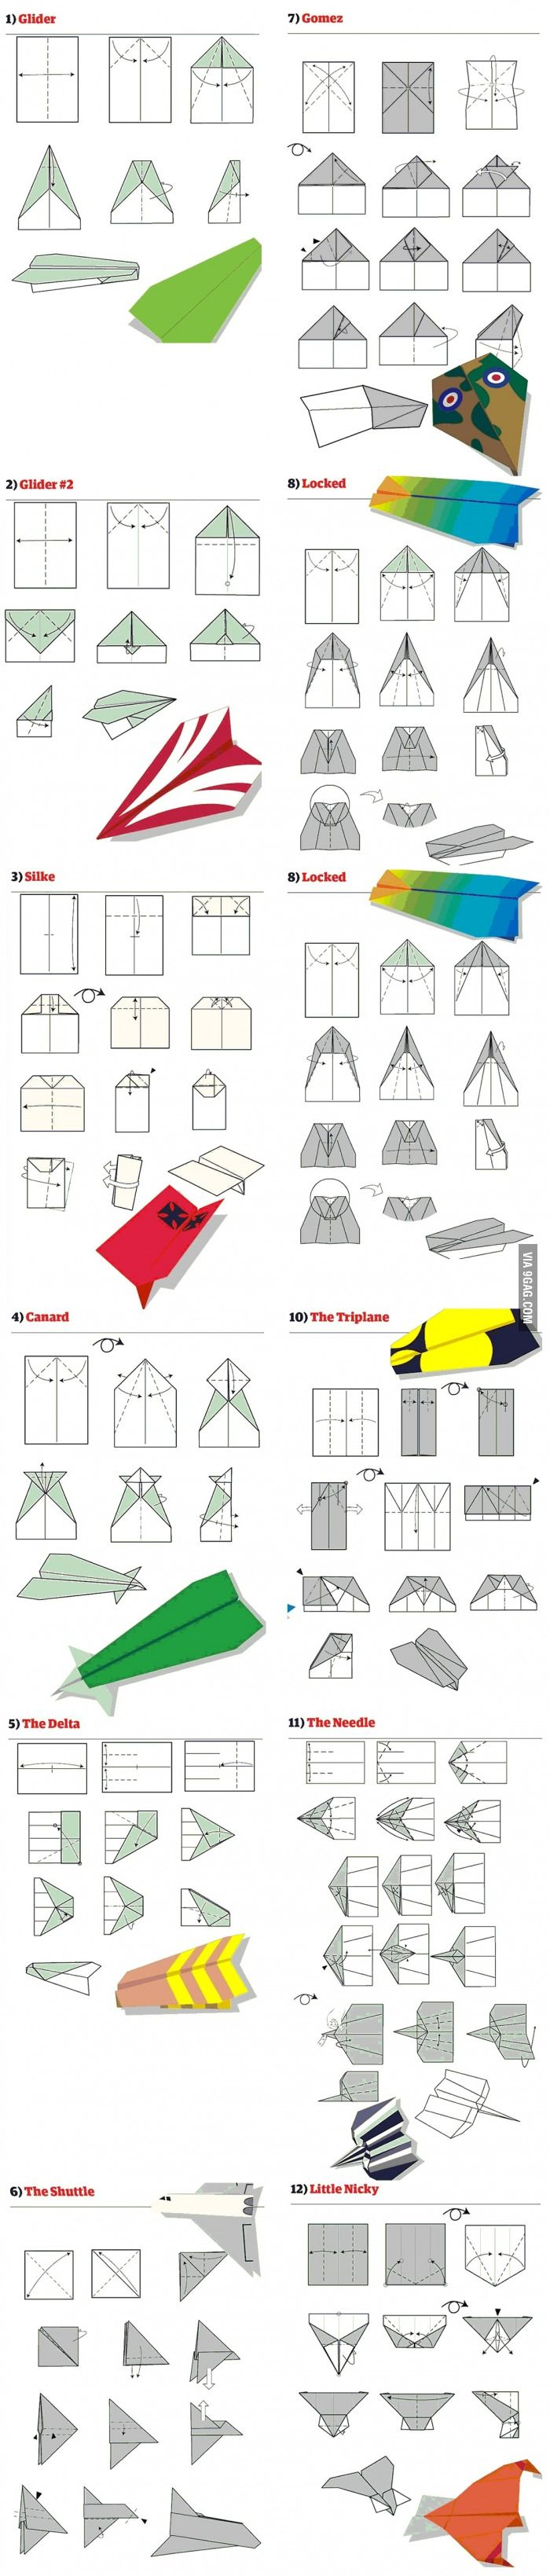 12 Aviones de papel (Tutorial) DIY